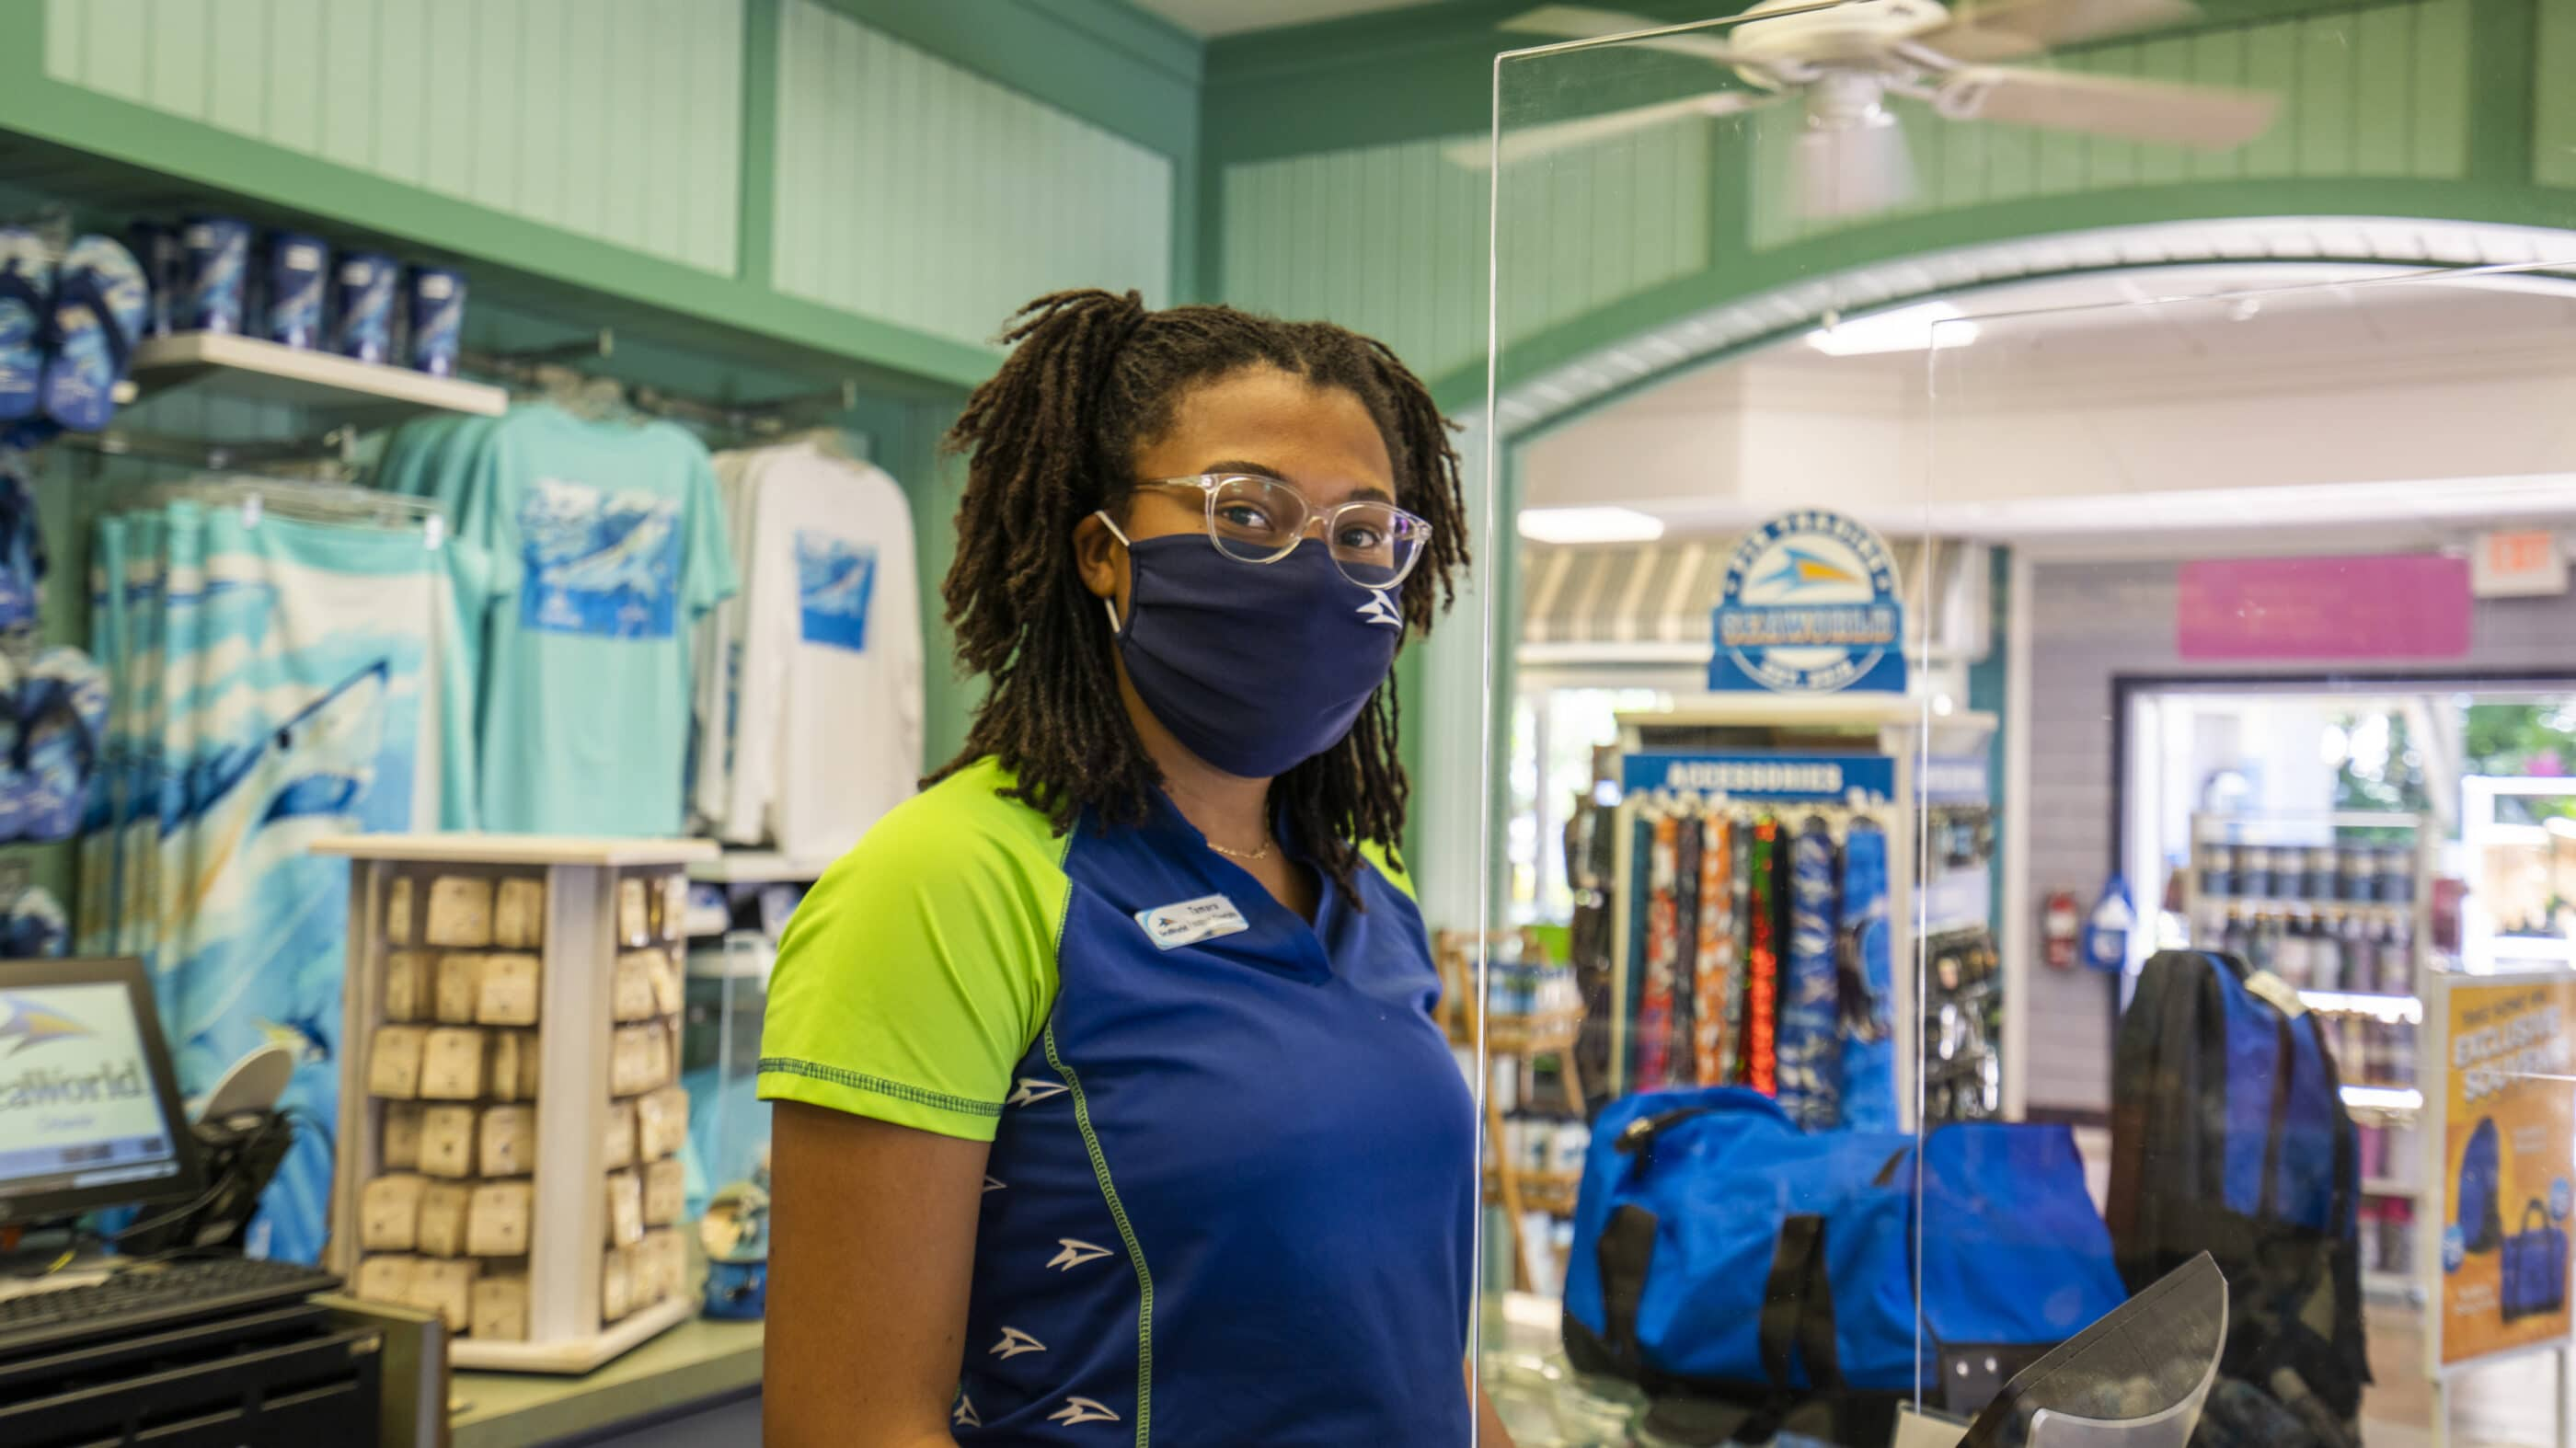 A SeaWorld San Diego employee with a mask behind plexiglass in a retail outlet.